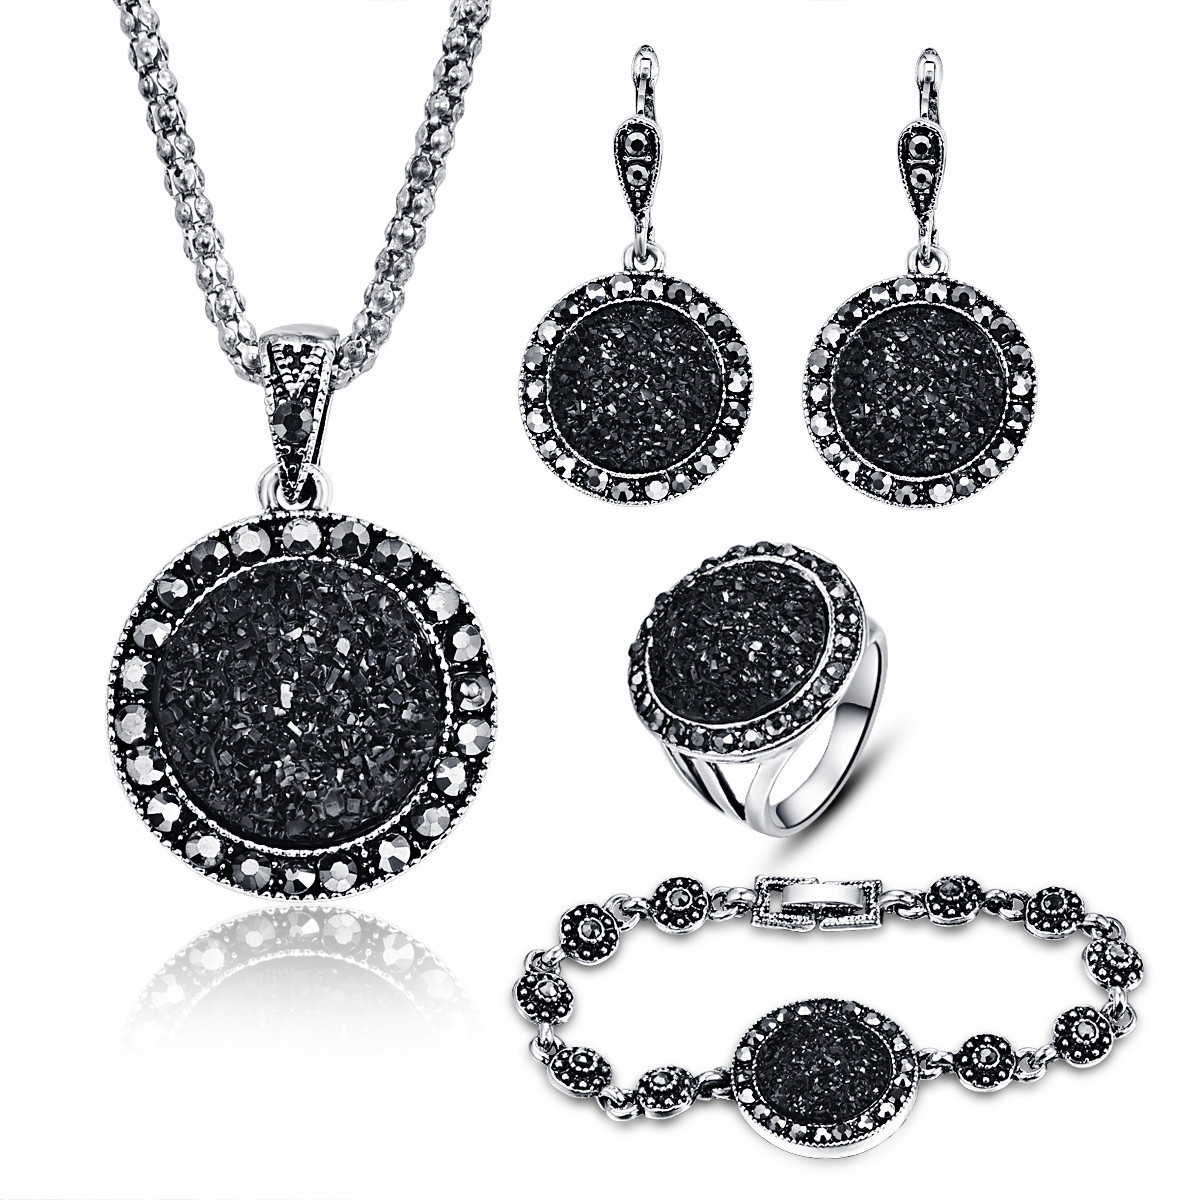 Boho Jewelry Sets Women Vintage Gothic Earrings Sets Fashion Women Jewelry Set Crystal Round Pendant Necklace Sets 4Pcs